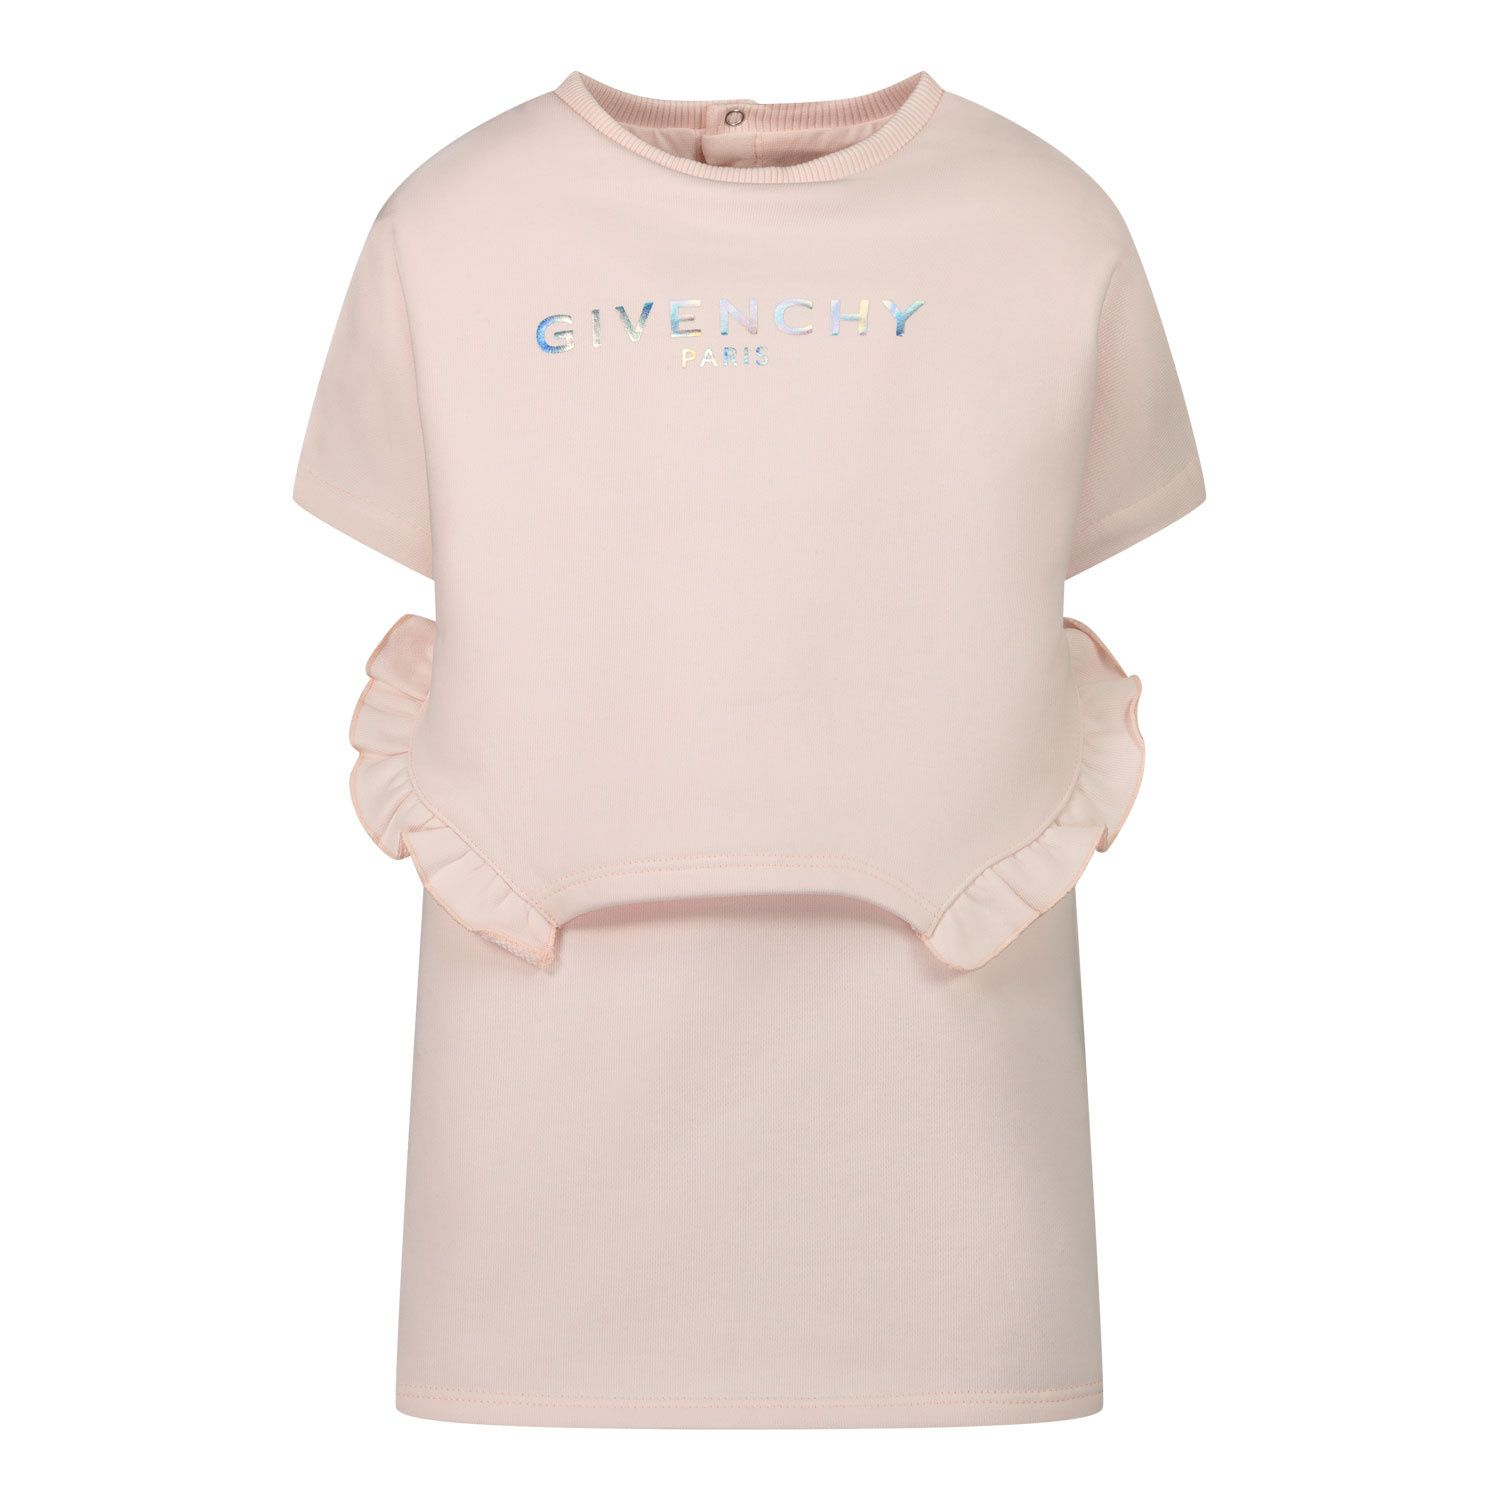 Picture of Givenchy H02069 baby dress light pink